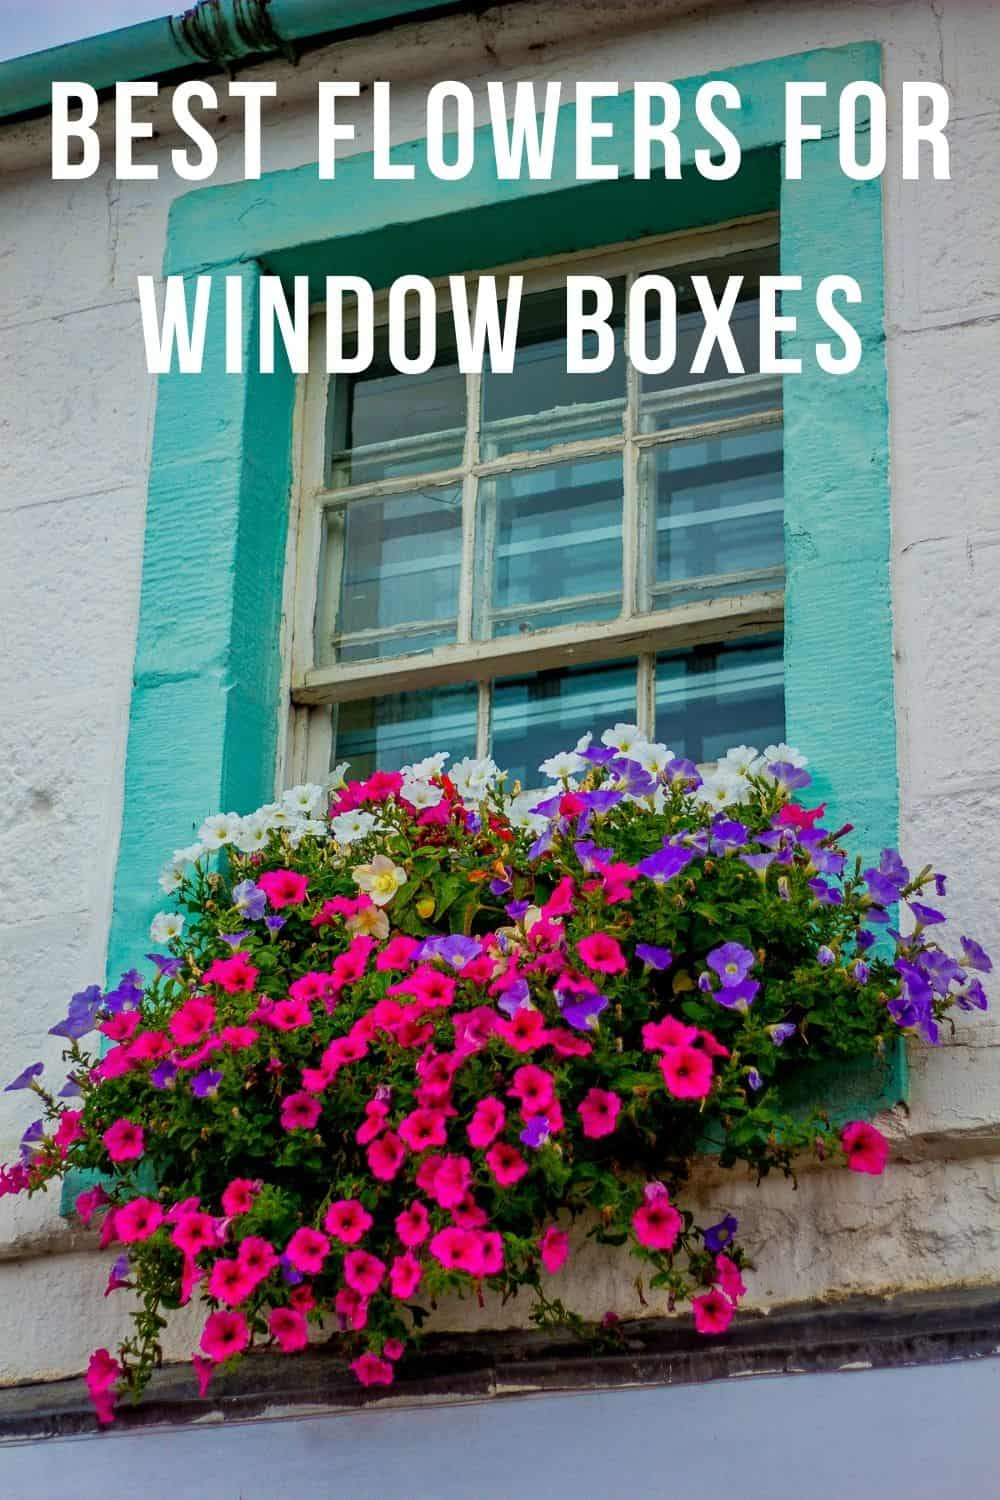 Best flowers for window boxes